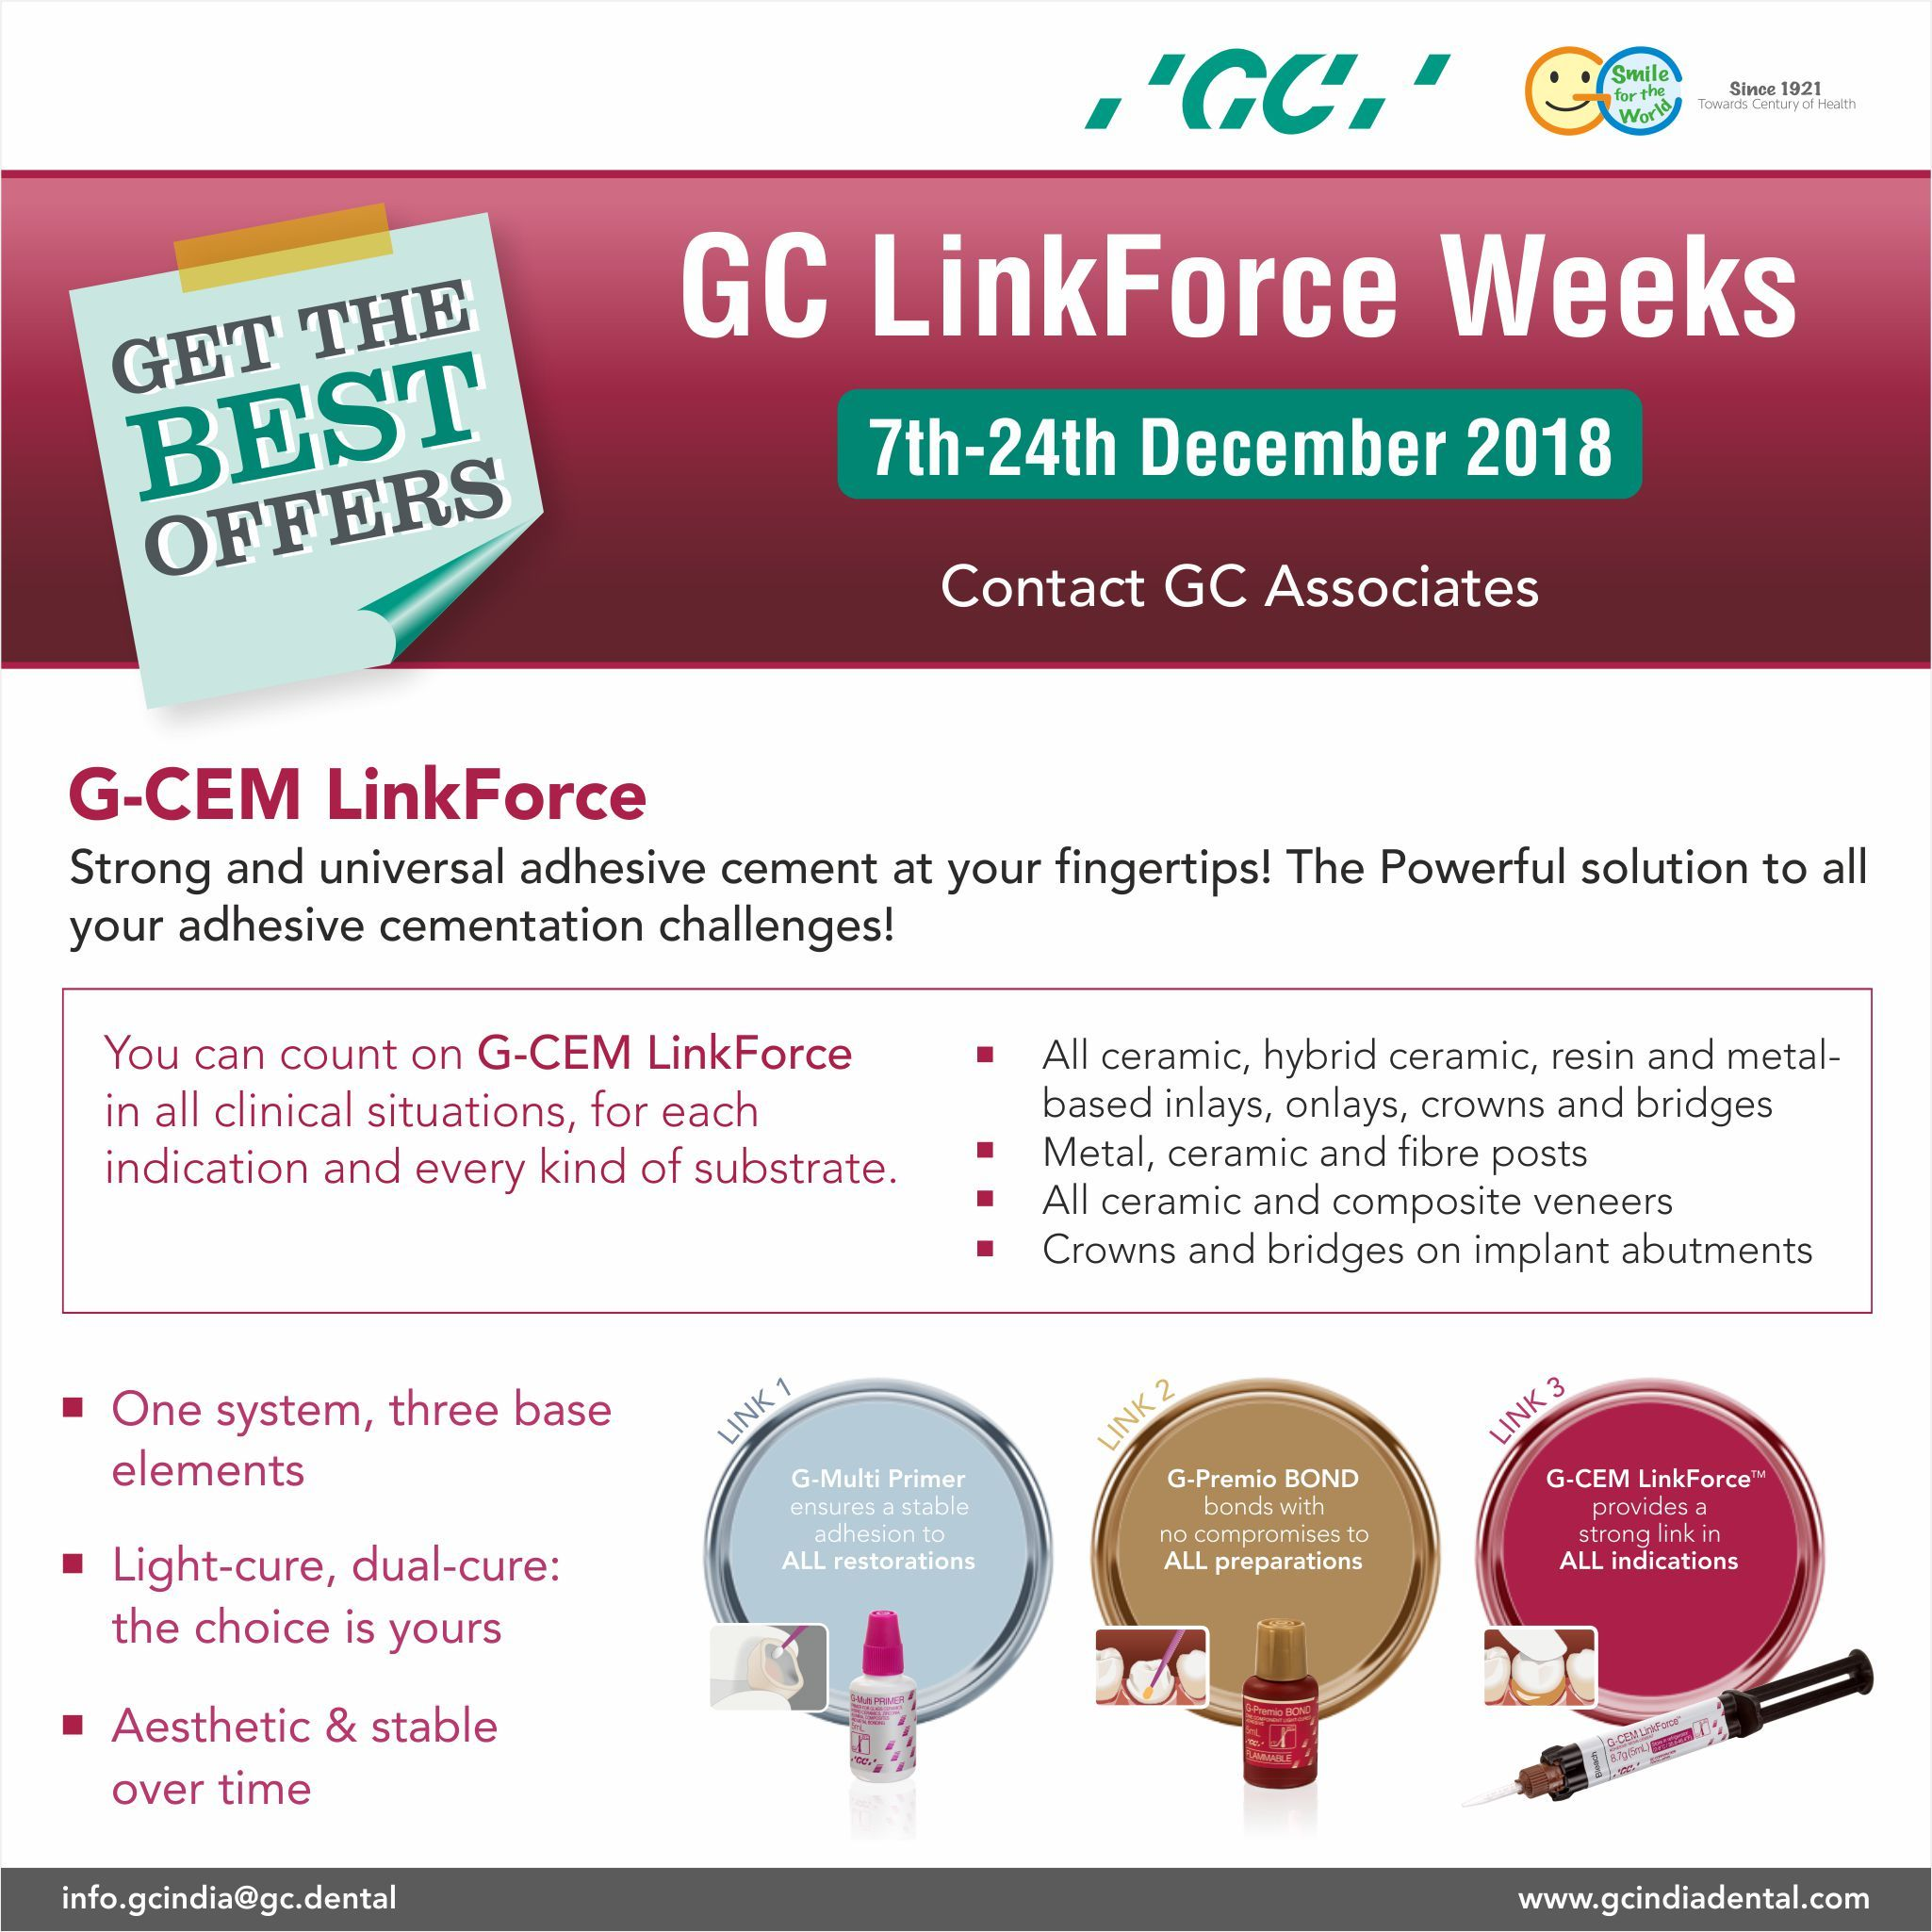 Join The Gc India Linkforce Weeks And Avail The Best Offer G Cem Linkforce From Gc The Universal And Powerful Solution To All Your Dental The Cure Adhesive